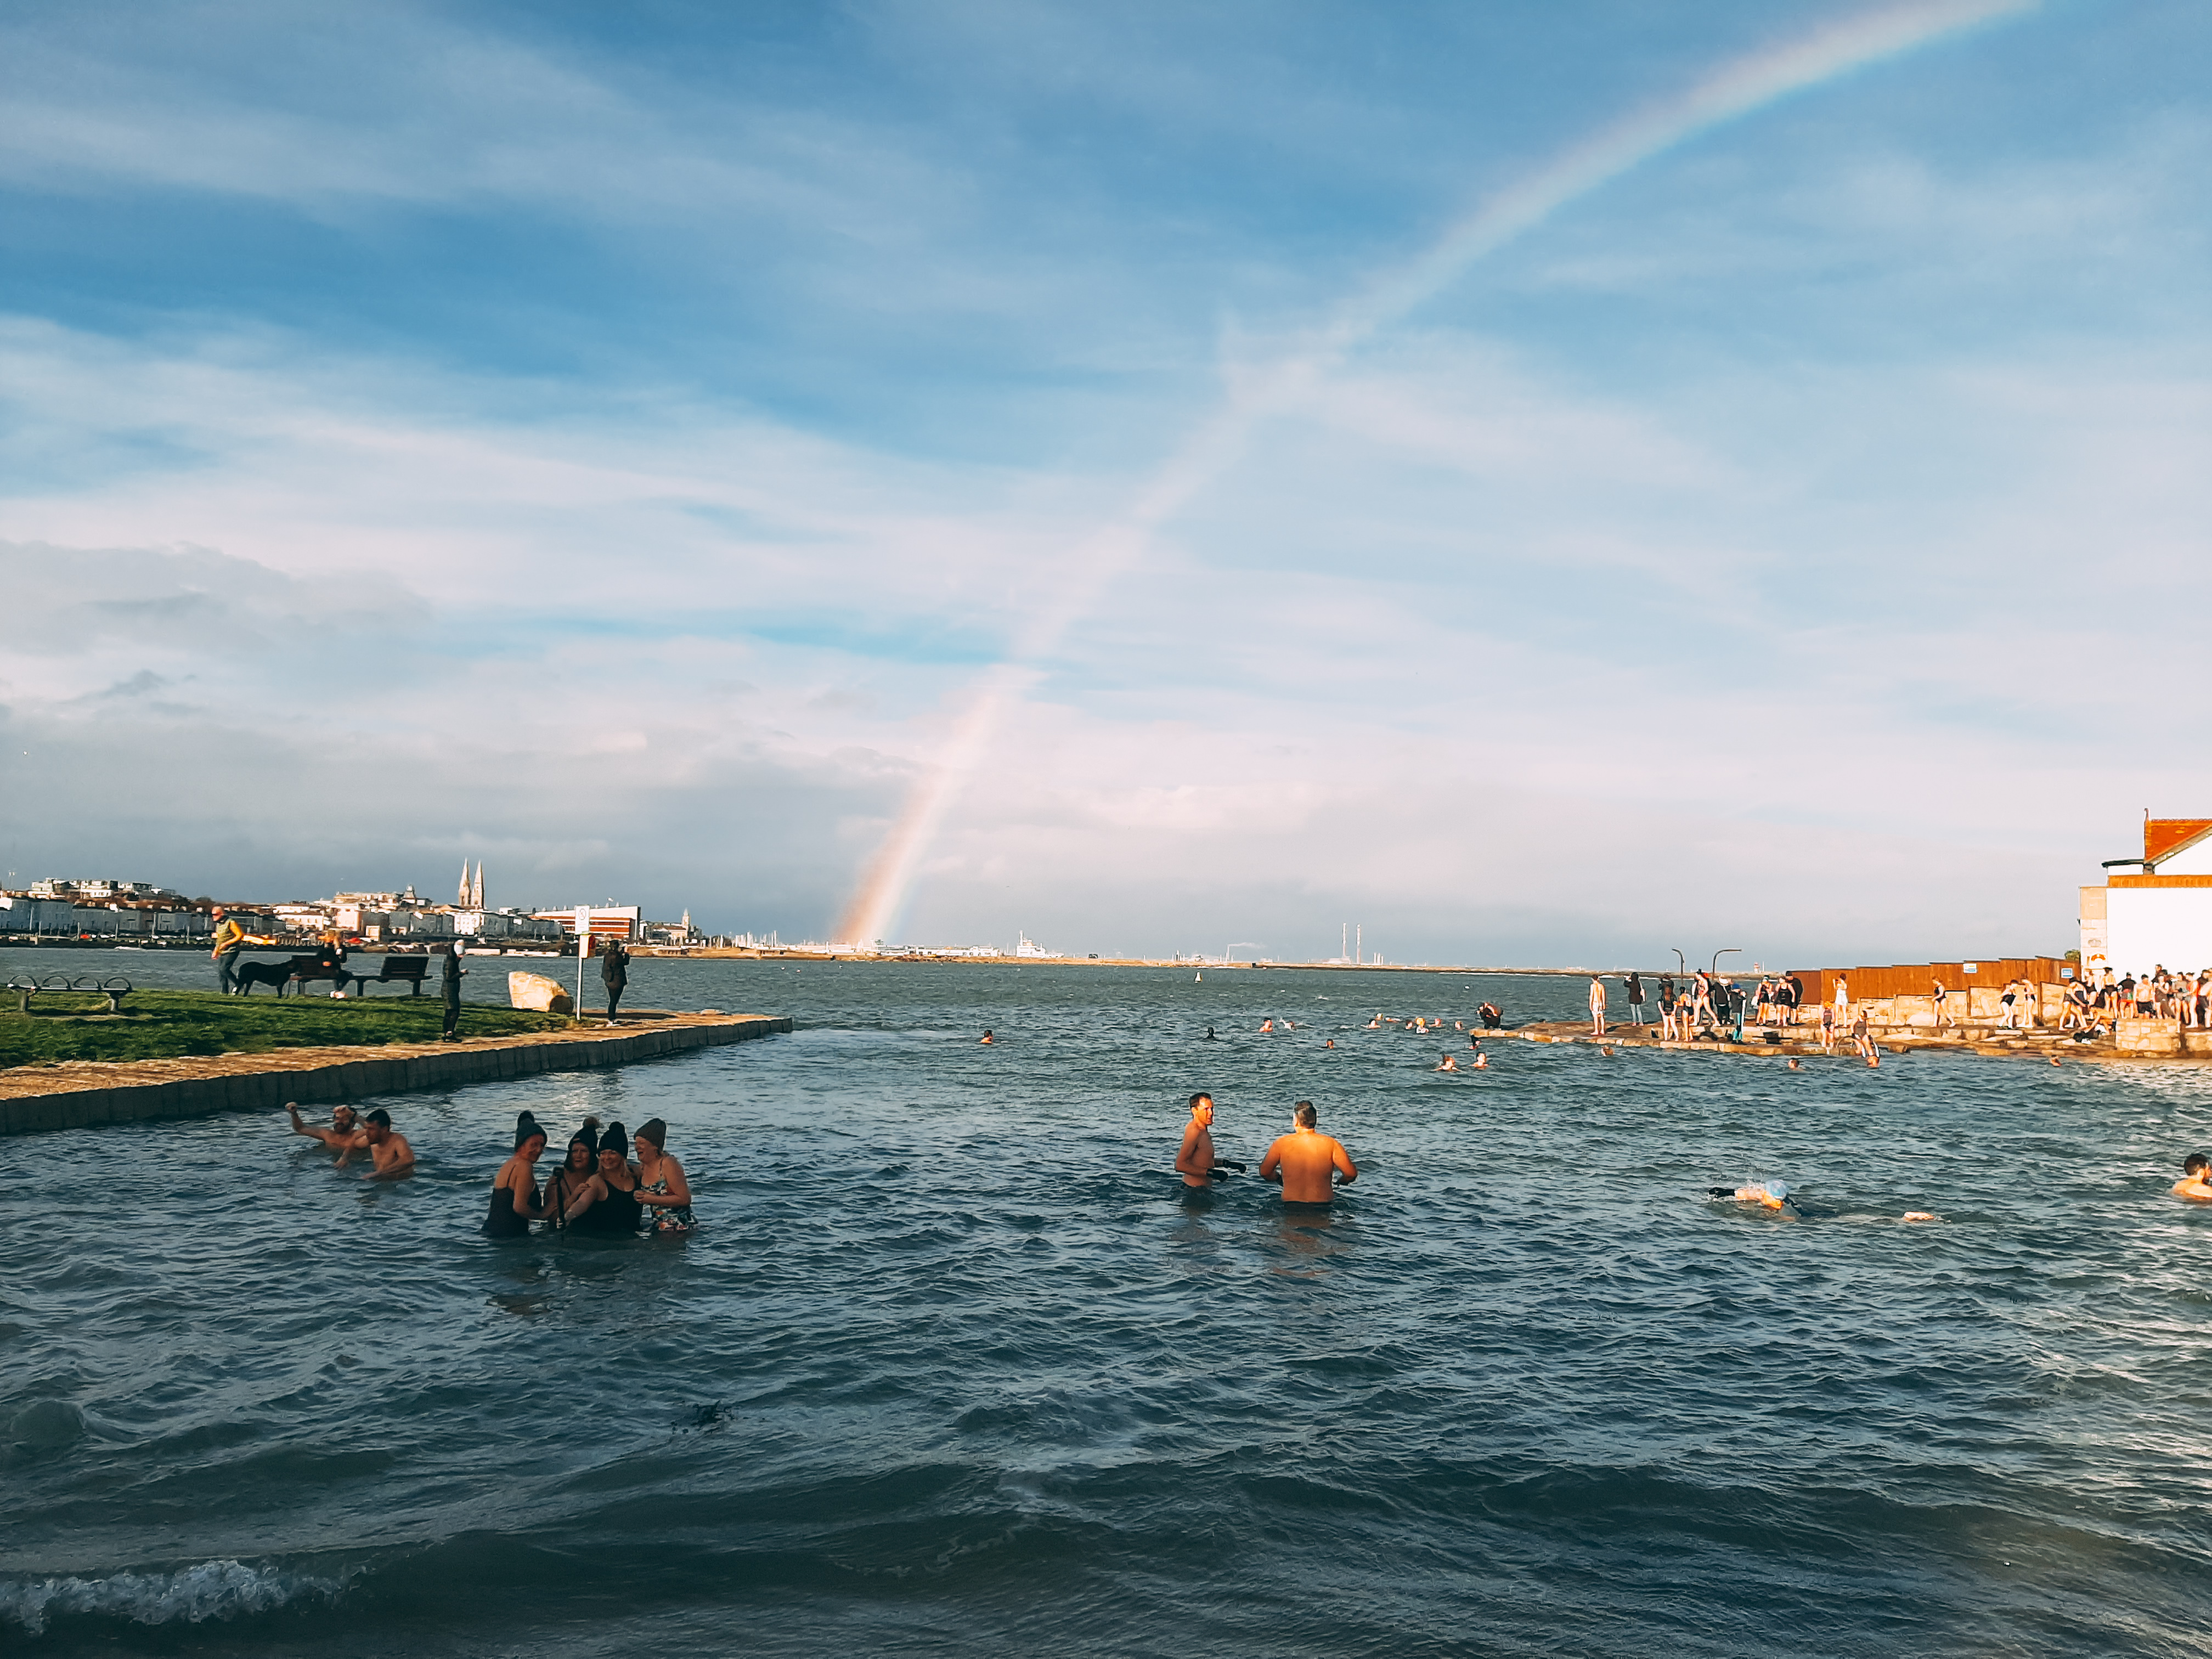 People swimming in a body of water. A rainbow in the sky